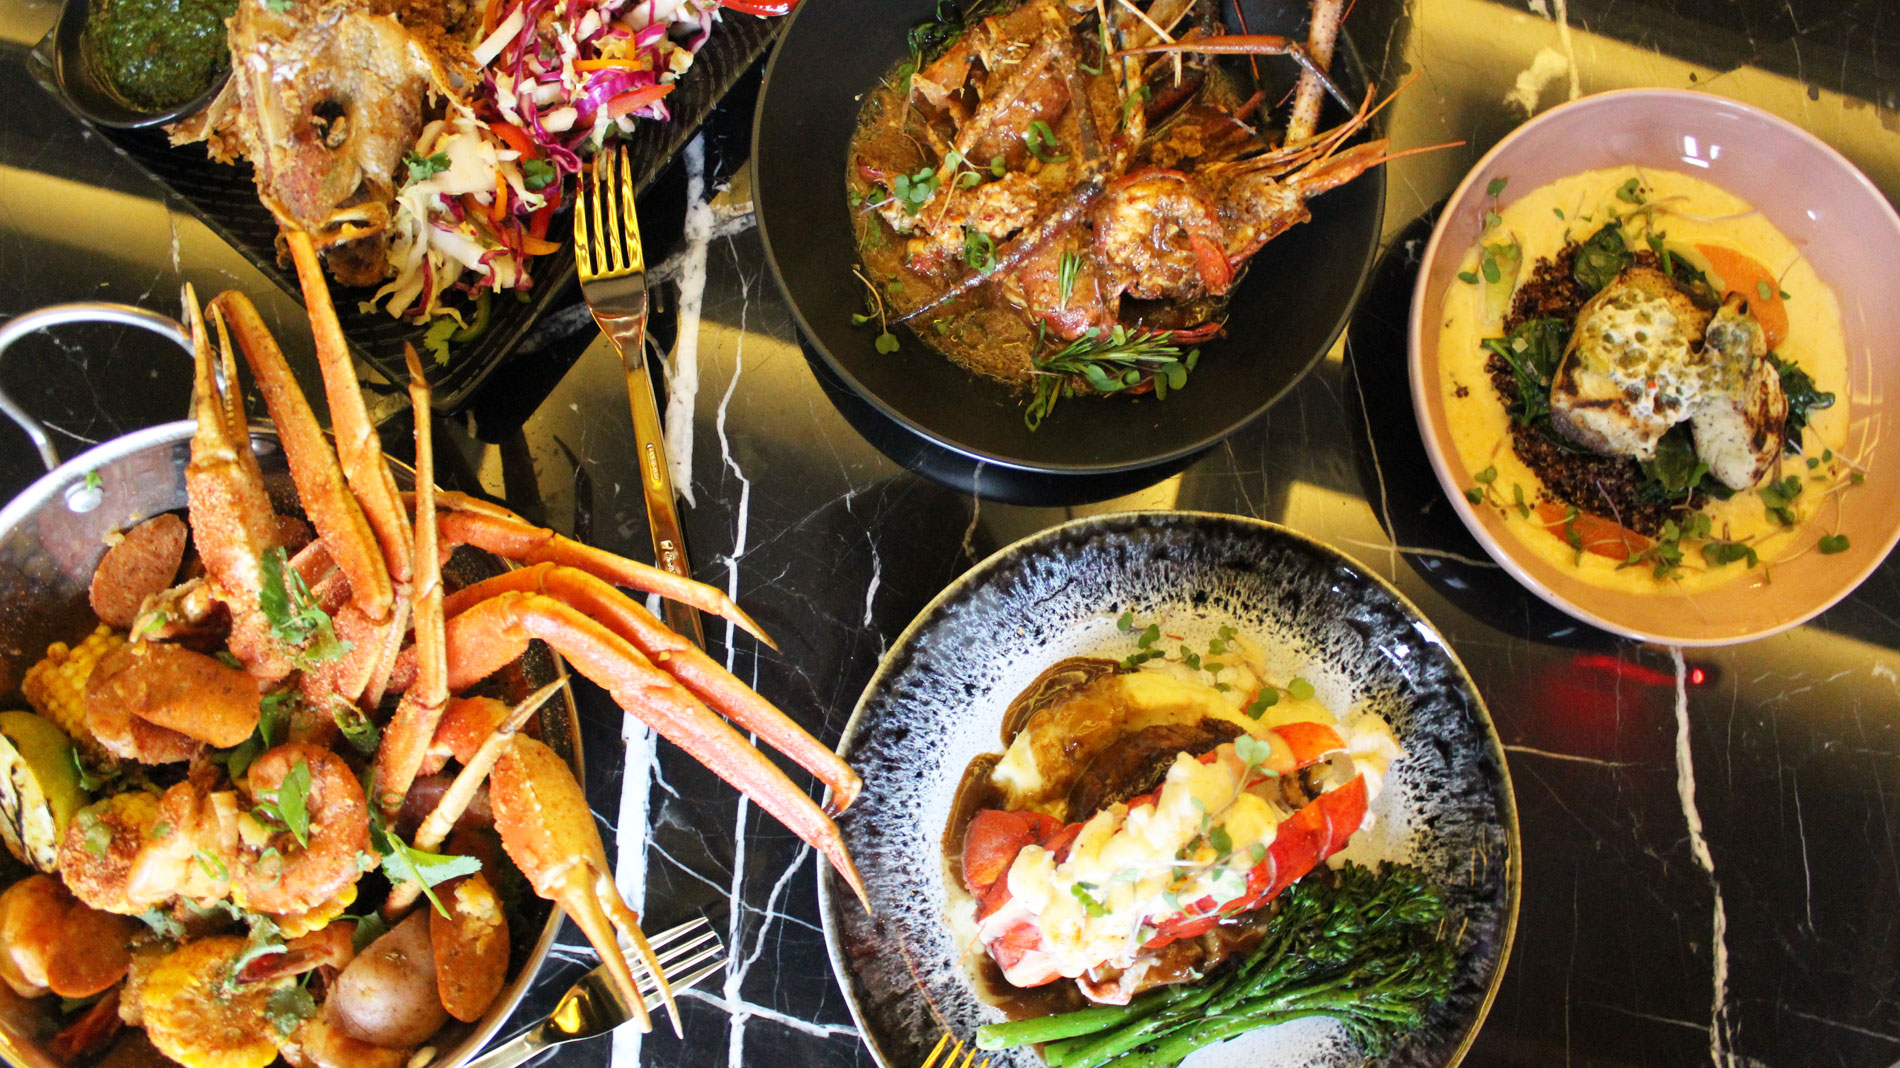 several seafood dishes with lobster, fish and more